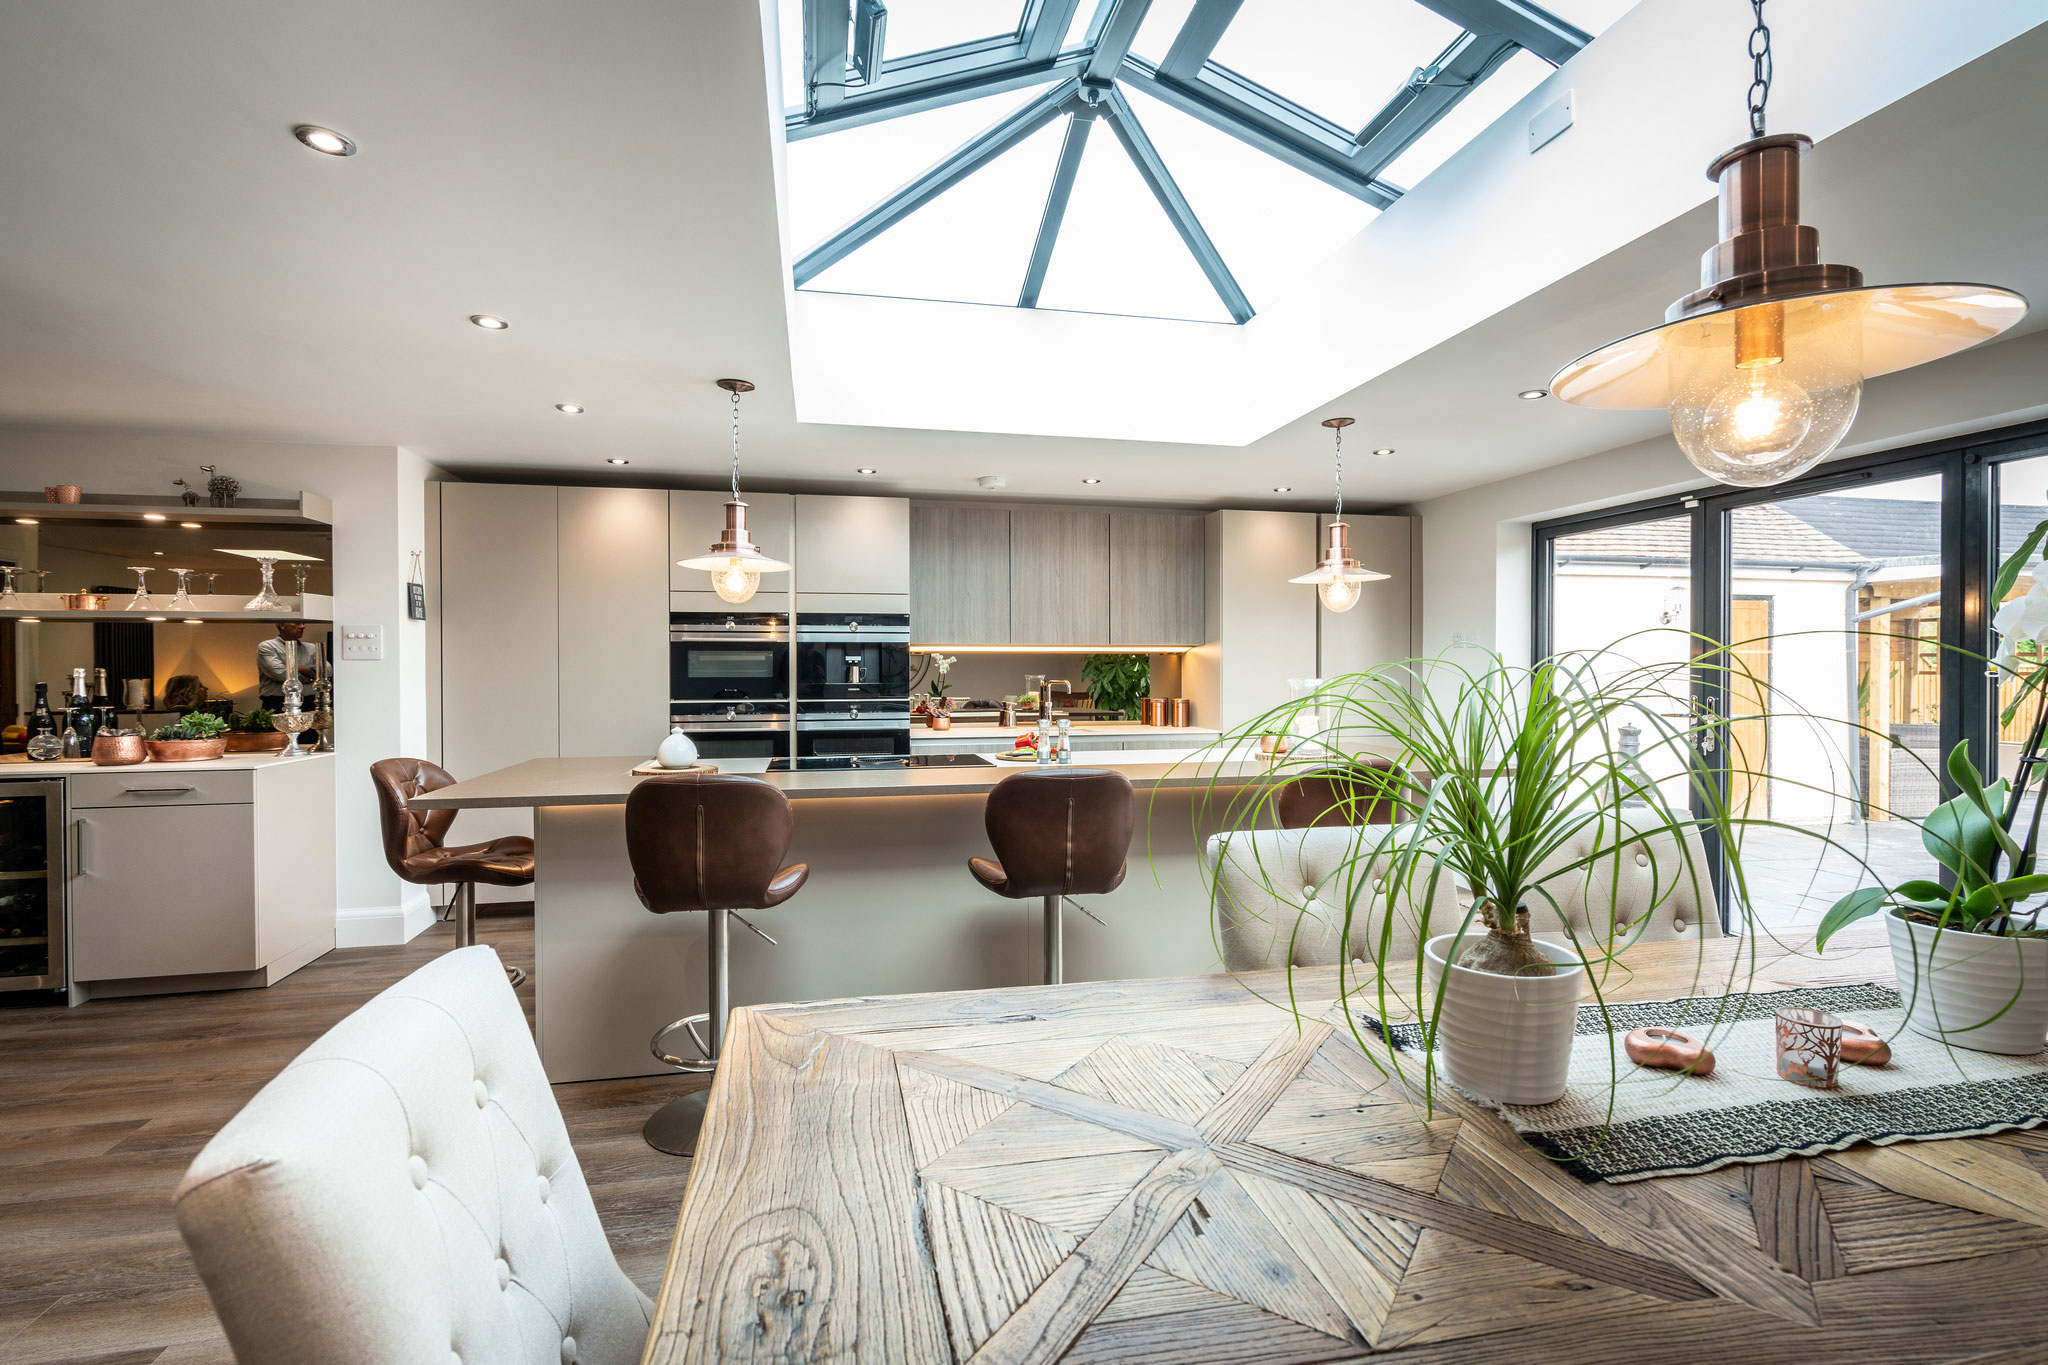 Image of Myers Touch Daniels Kitchen 01020 ZF 2442 14358 1 030 in A space designed for socializing - Cosentino